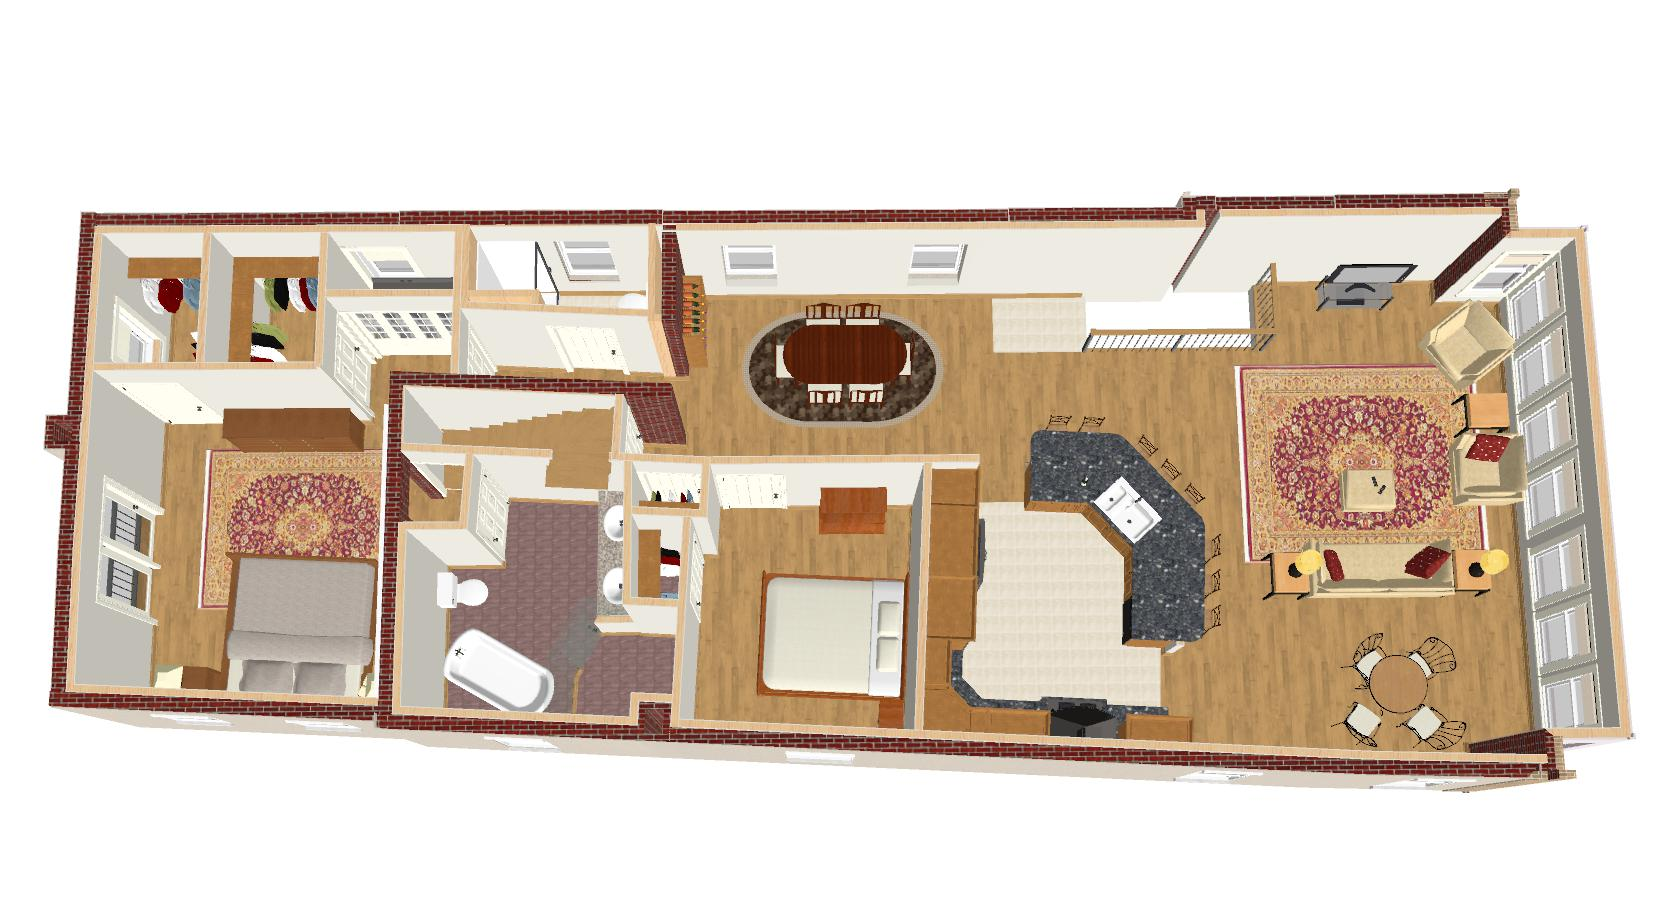 (FLOOR PLAN OVERVIEW - 3D design model)